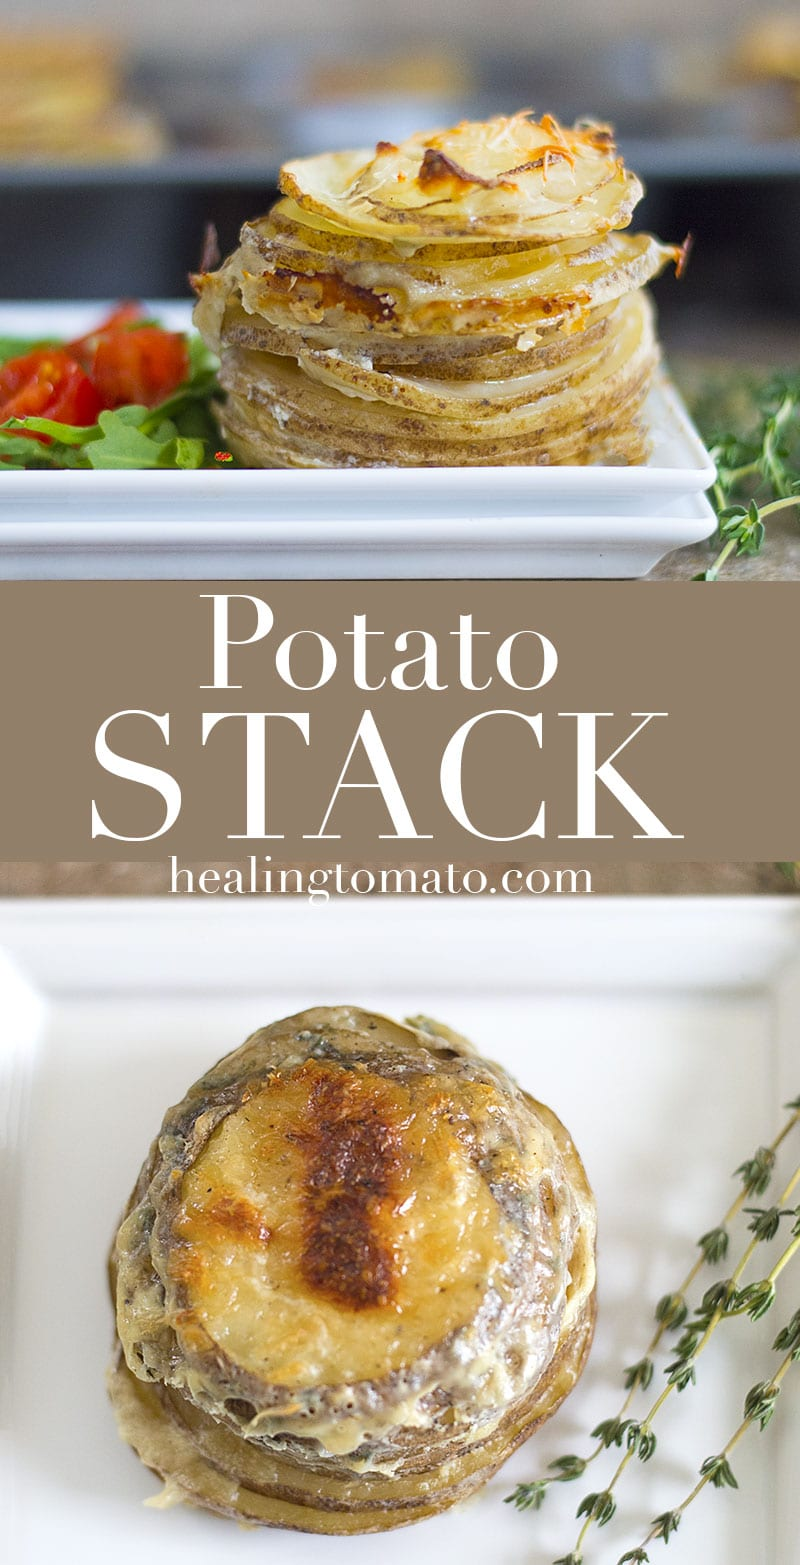 Potato Stack is a simple side dish made with Idaho potatoes, milk, Parmesan cheese and Thyme. Add nutritional yeast and flax seed meal for texture and flavor